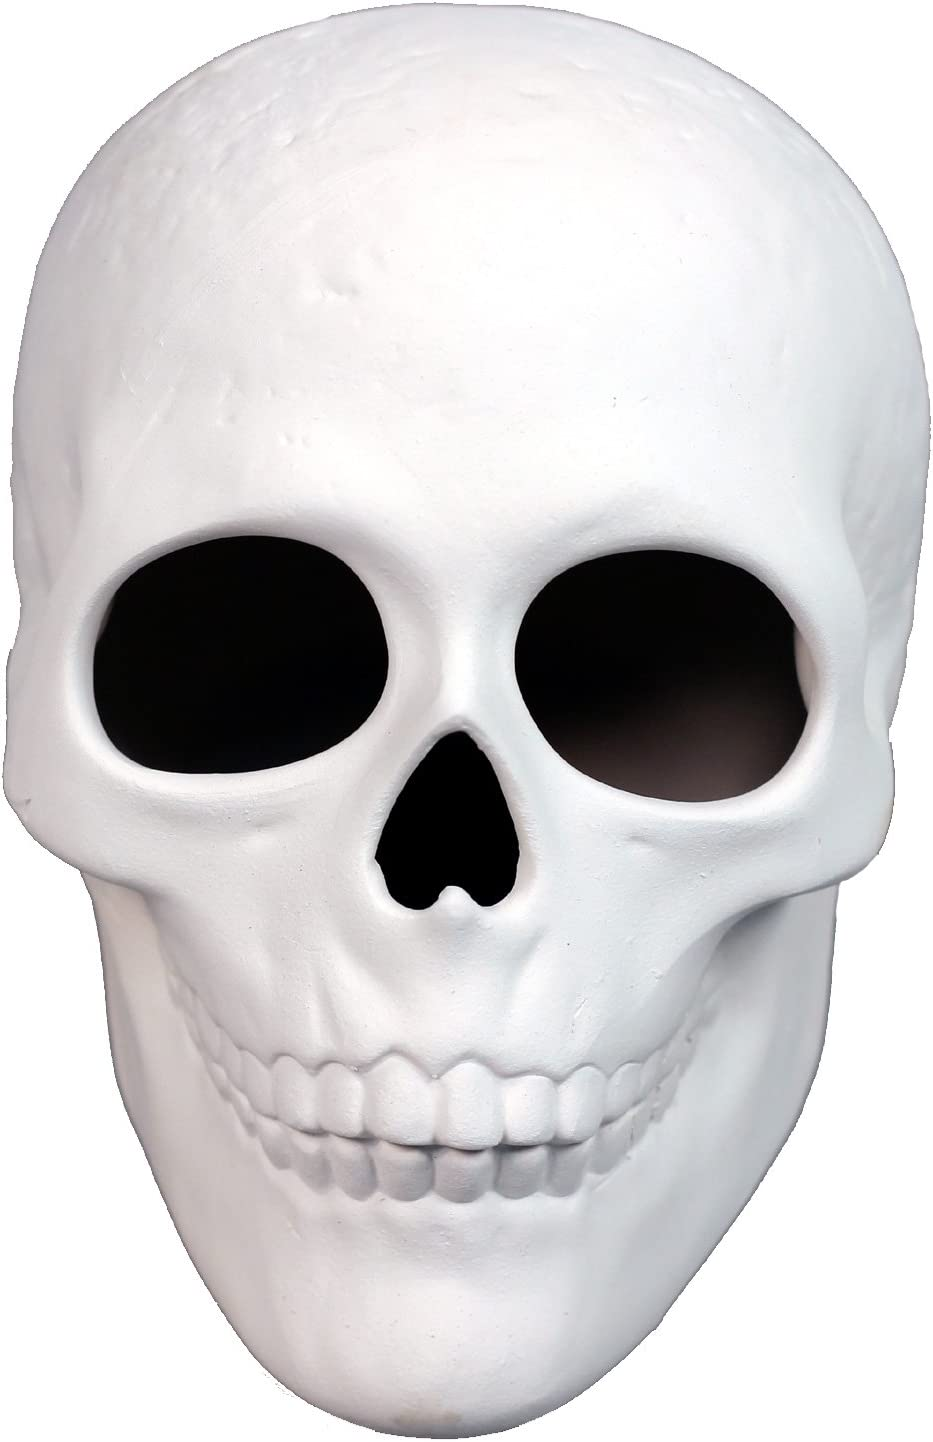 Ready to Nashville-Davidson Mall Paint Ceramic Bisque 5 Skull Tall x 4 Inch Max 84% OFF Long